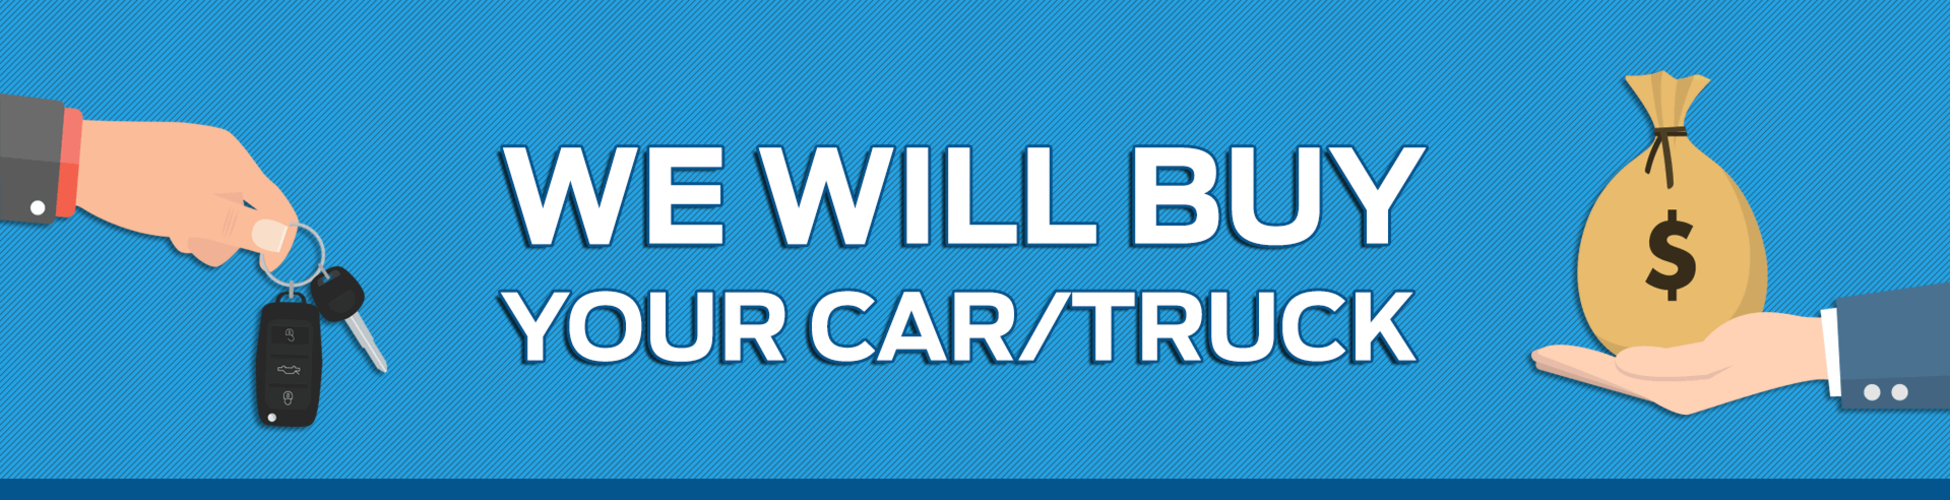 We Will Buy You Car/Truck